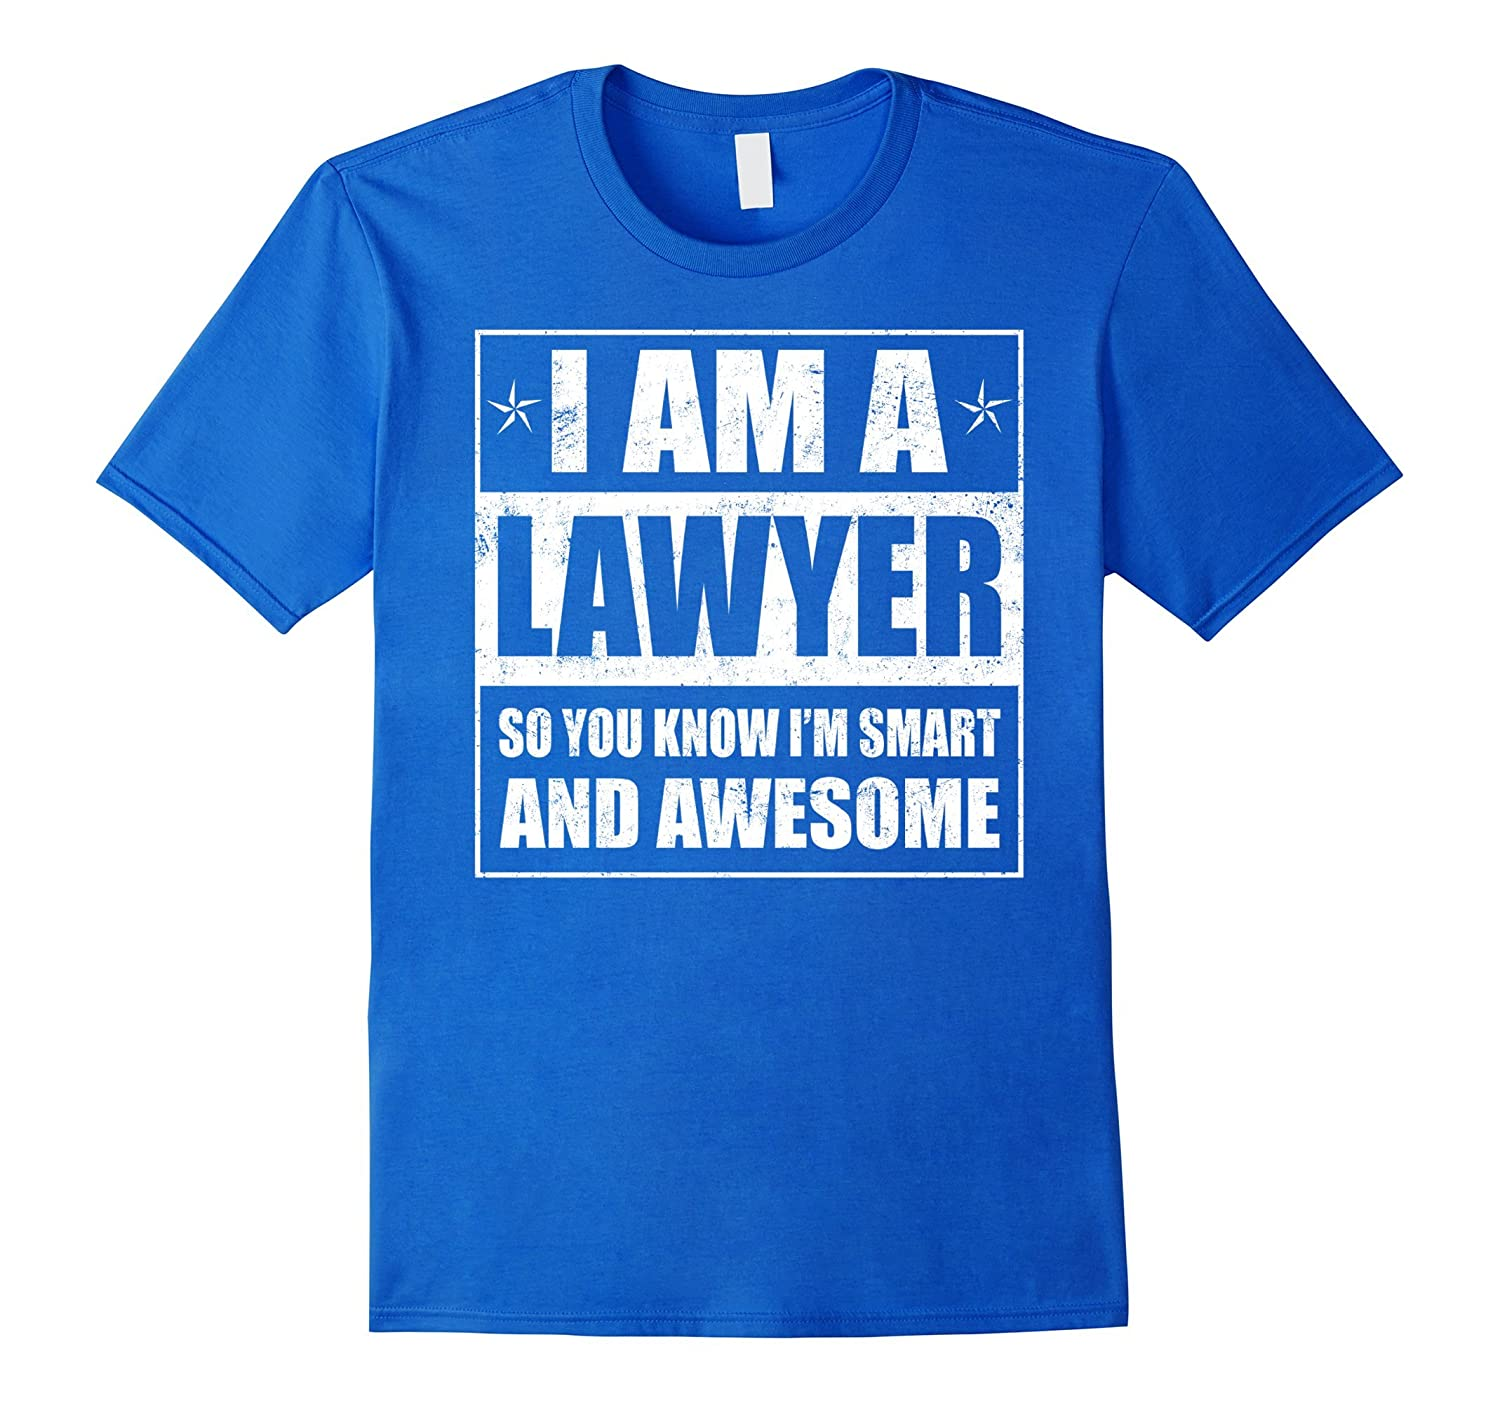 I Am A Lawyer T-shirt So You Know I'm Smart And Awesome